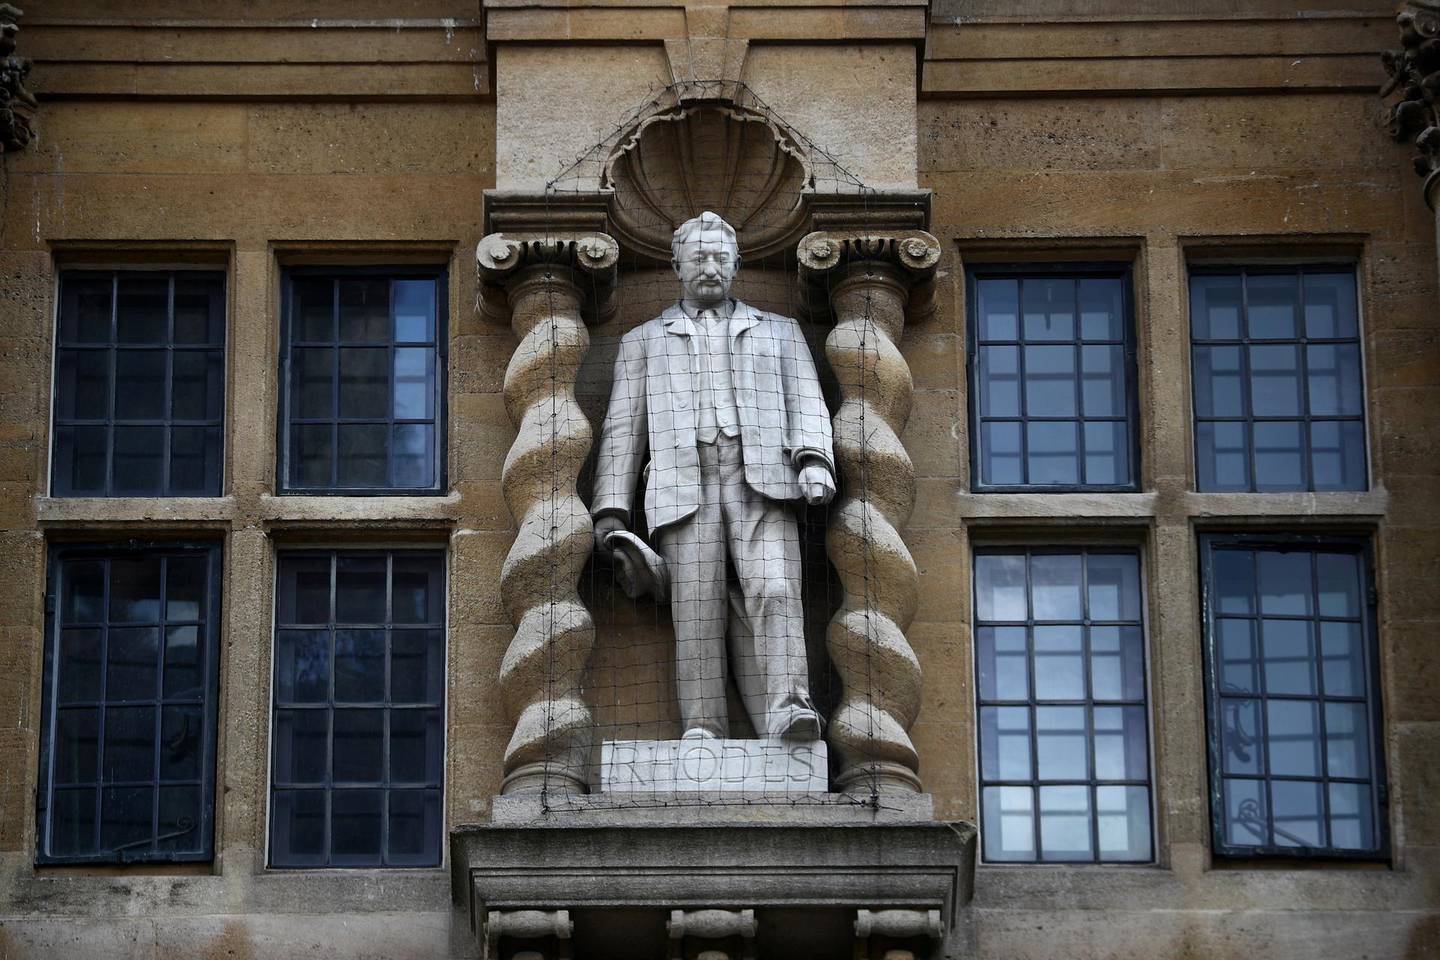 A statue of British colonialist Cecil Rhodes is seen on the side of Oriel College in Oxford, following the death of George Floyd who died in police custody in Minneapolis, Oxford, Britain, June 9, 2020. REUTERS/Hannah McKay